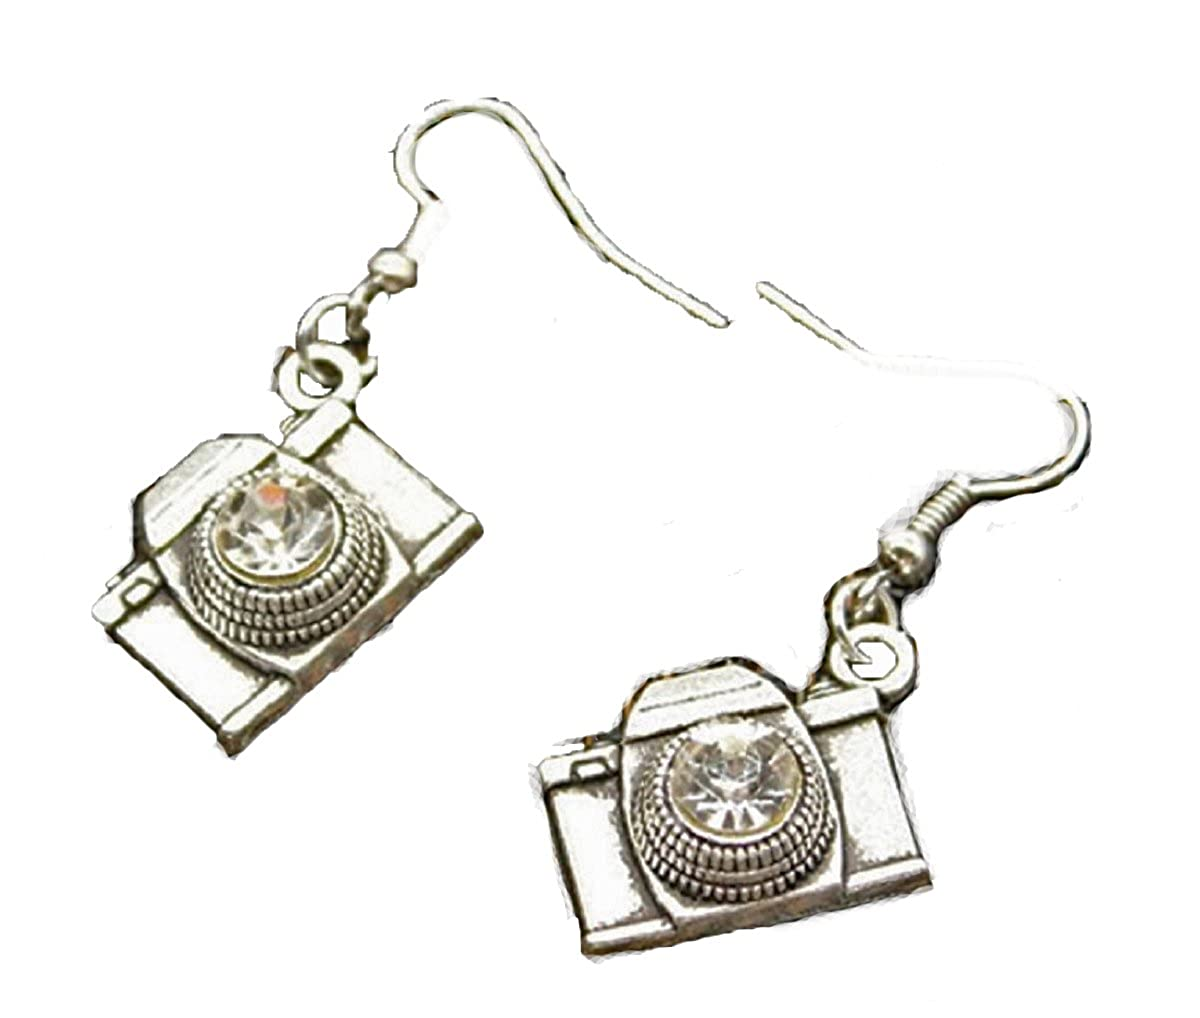 FTH Camera Earrings are Embellished with Faceted Crystal Rhinestones Celebrate Your Favorite Hobby